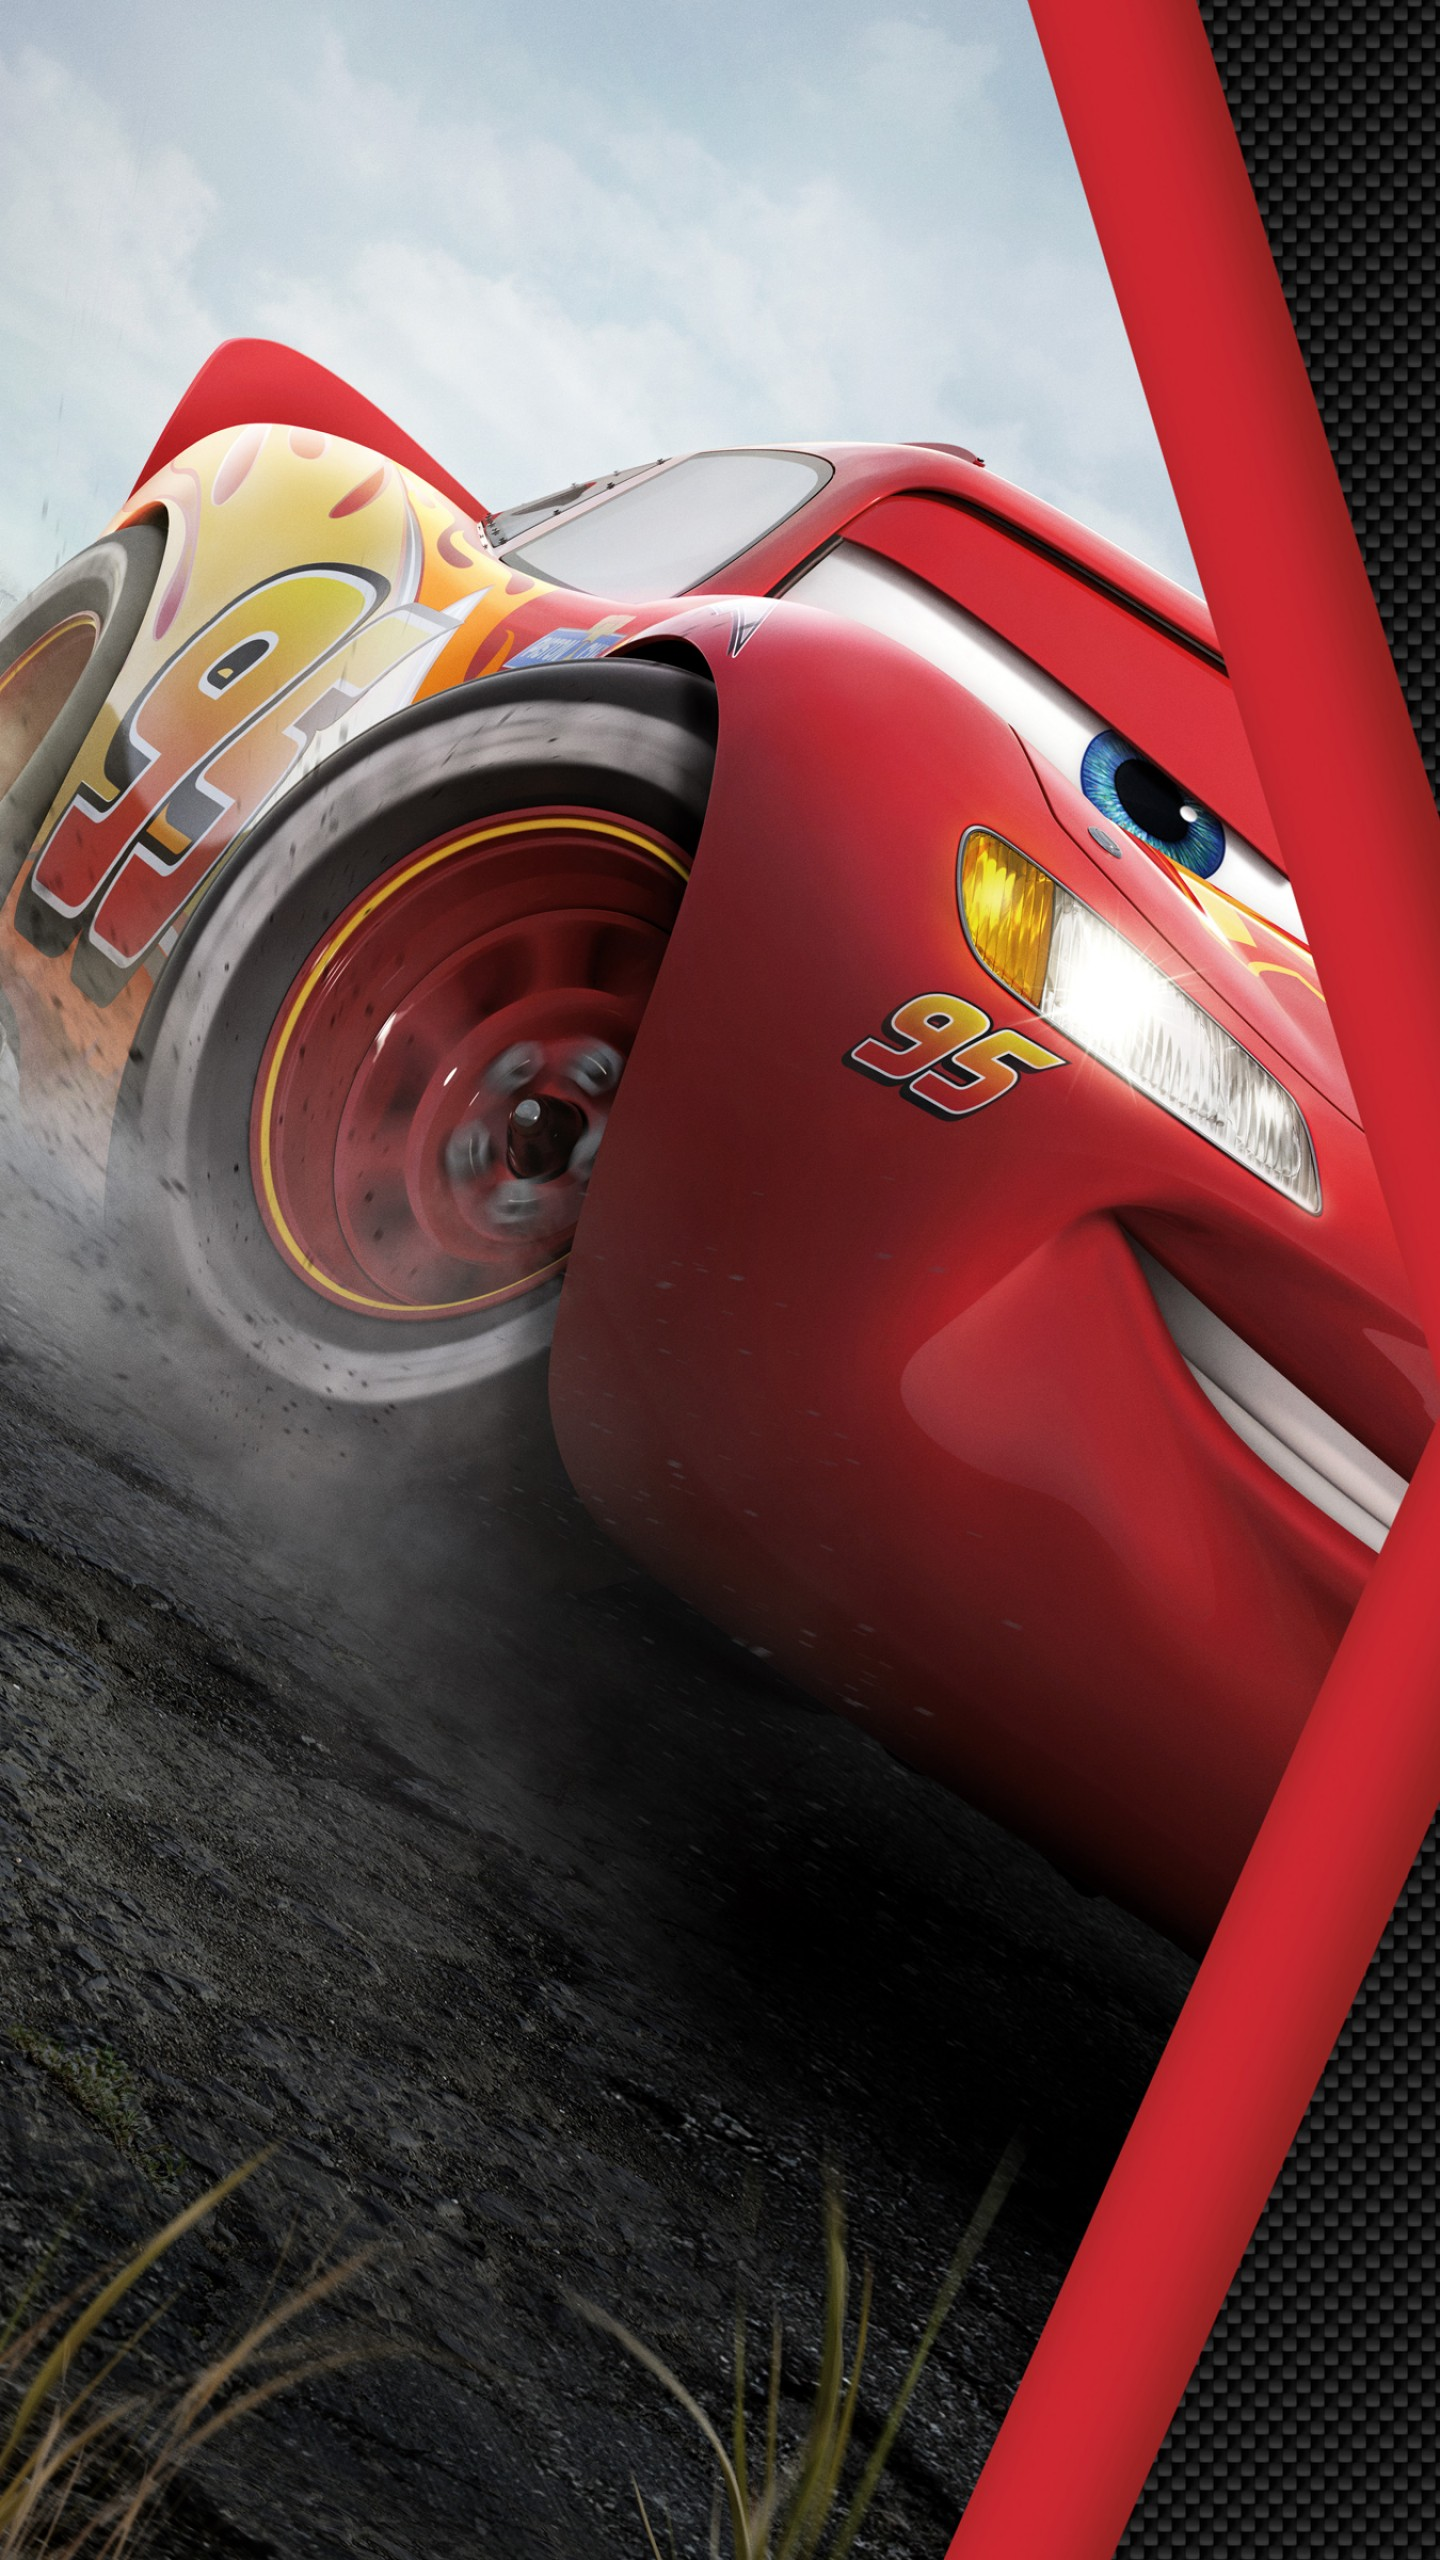 Wallpaper cars 3 4k lightning mcqueen poster movies 14172 - Cars 3 wallpaper ...